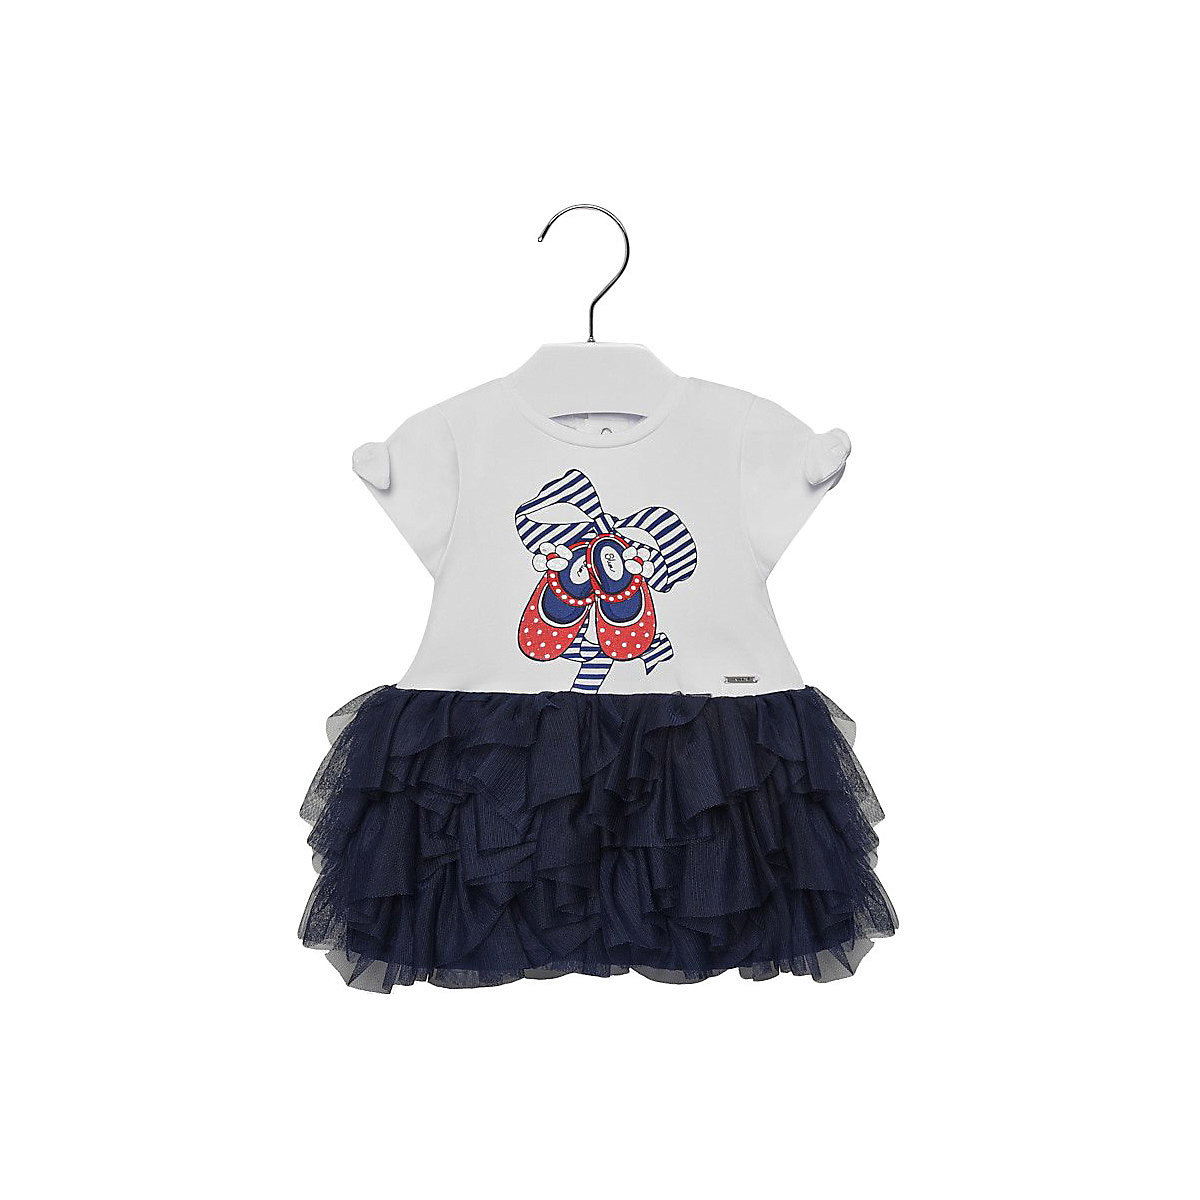 MAYORAL Dresses 10678690 Girl Children fitted pleated skirt Blue Cotton Casual Print Knee-Length Short Sleeve girl print drawstring top